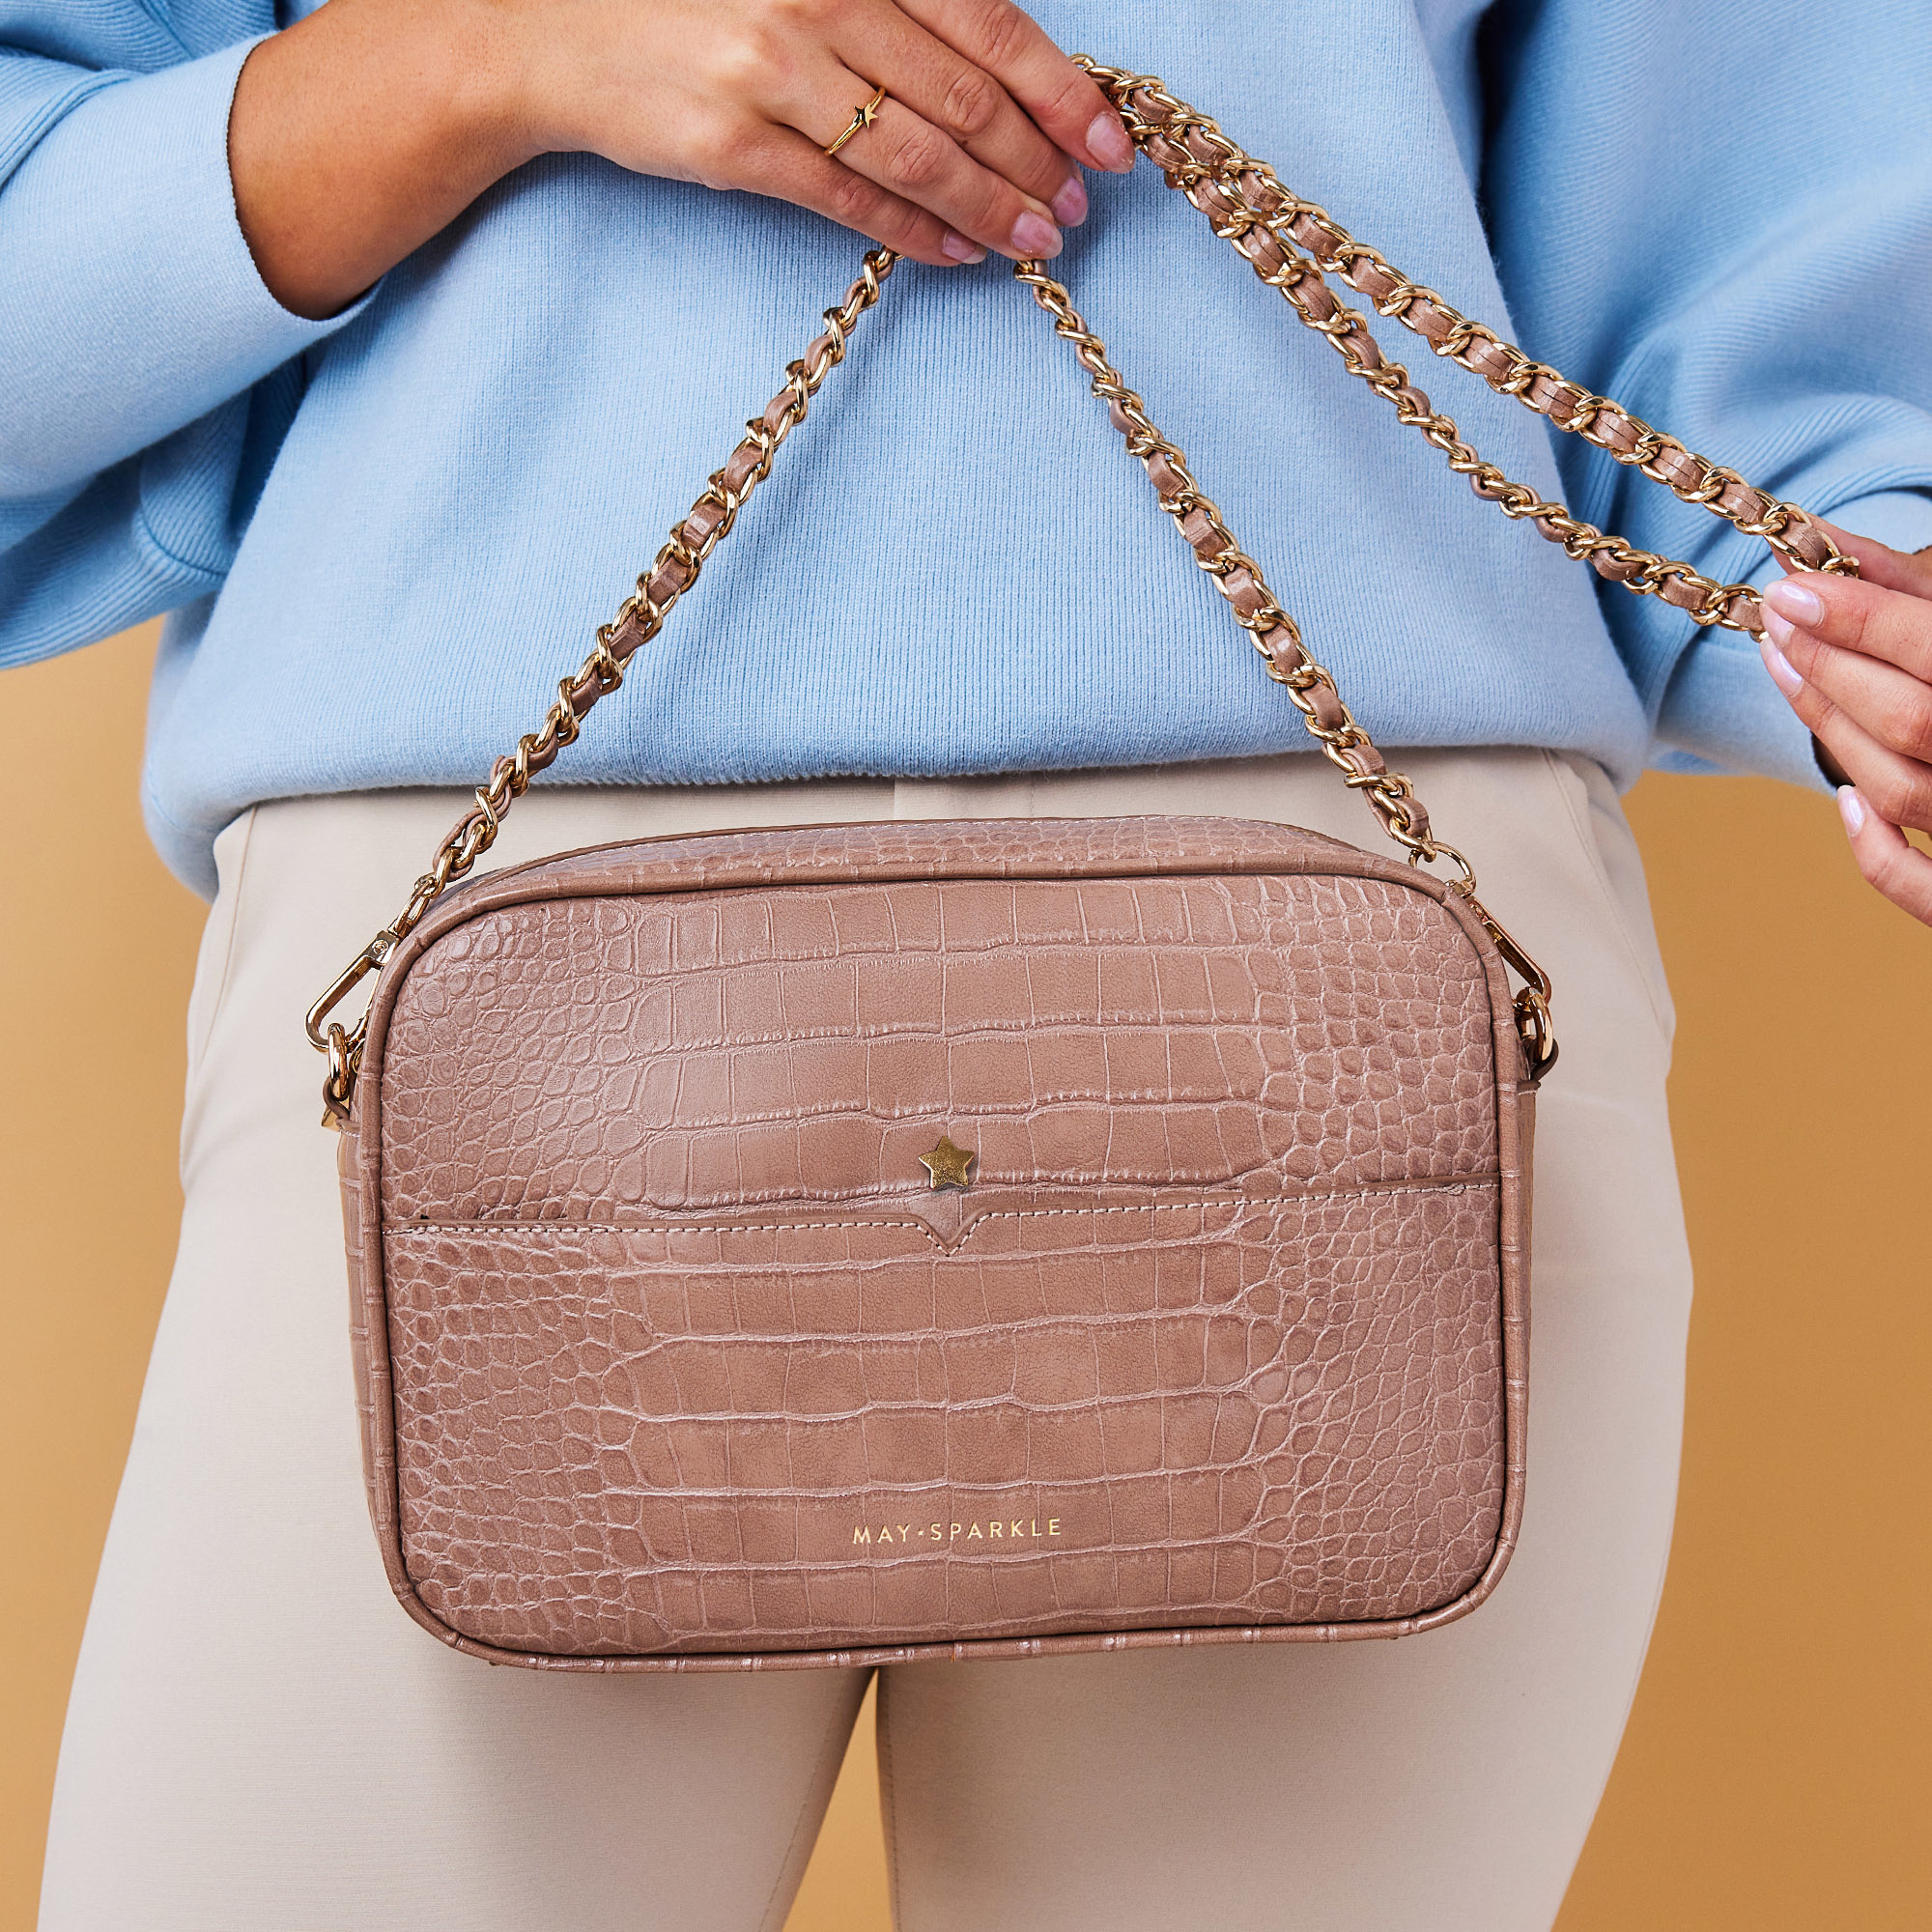 May Sparkle Festive taupe croco crossbody